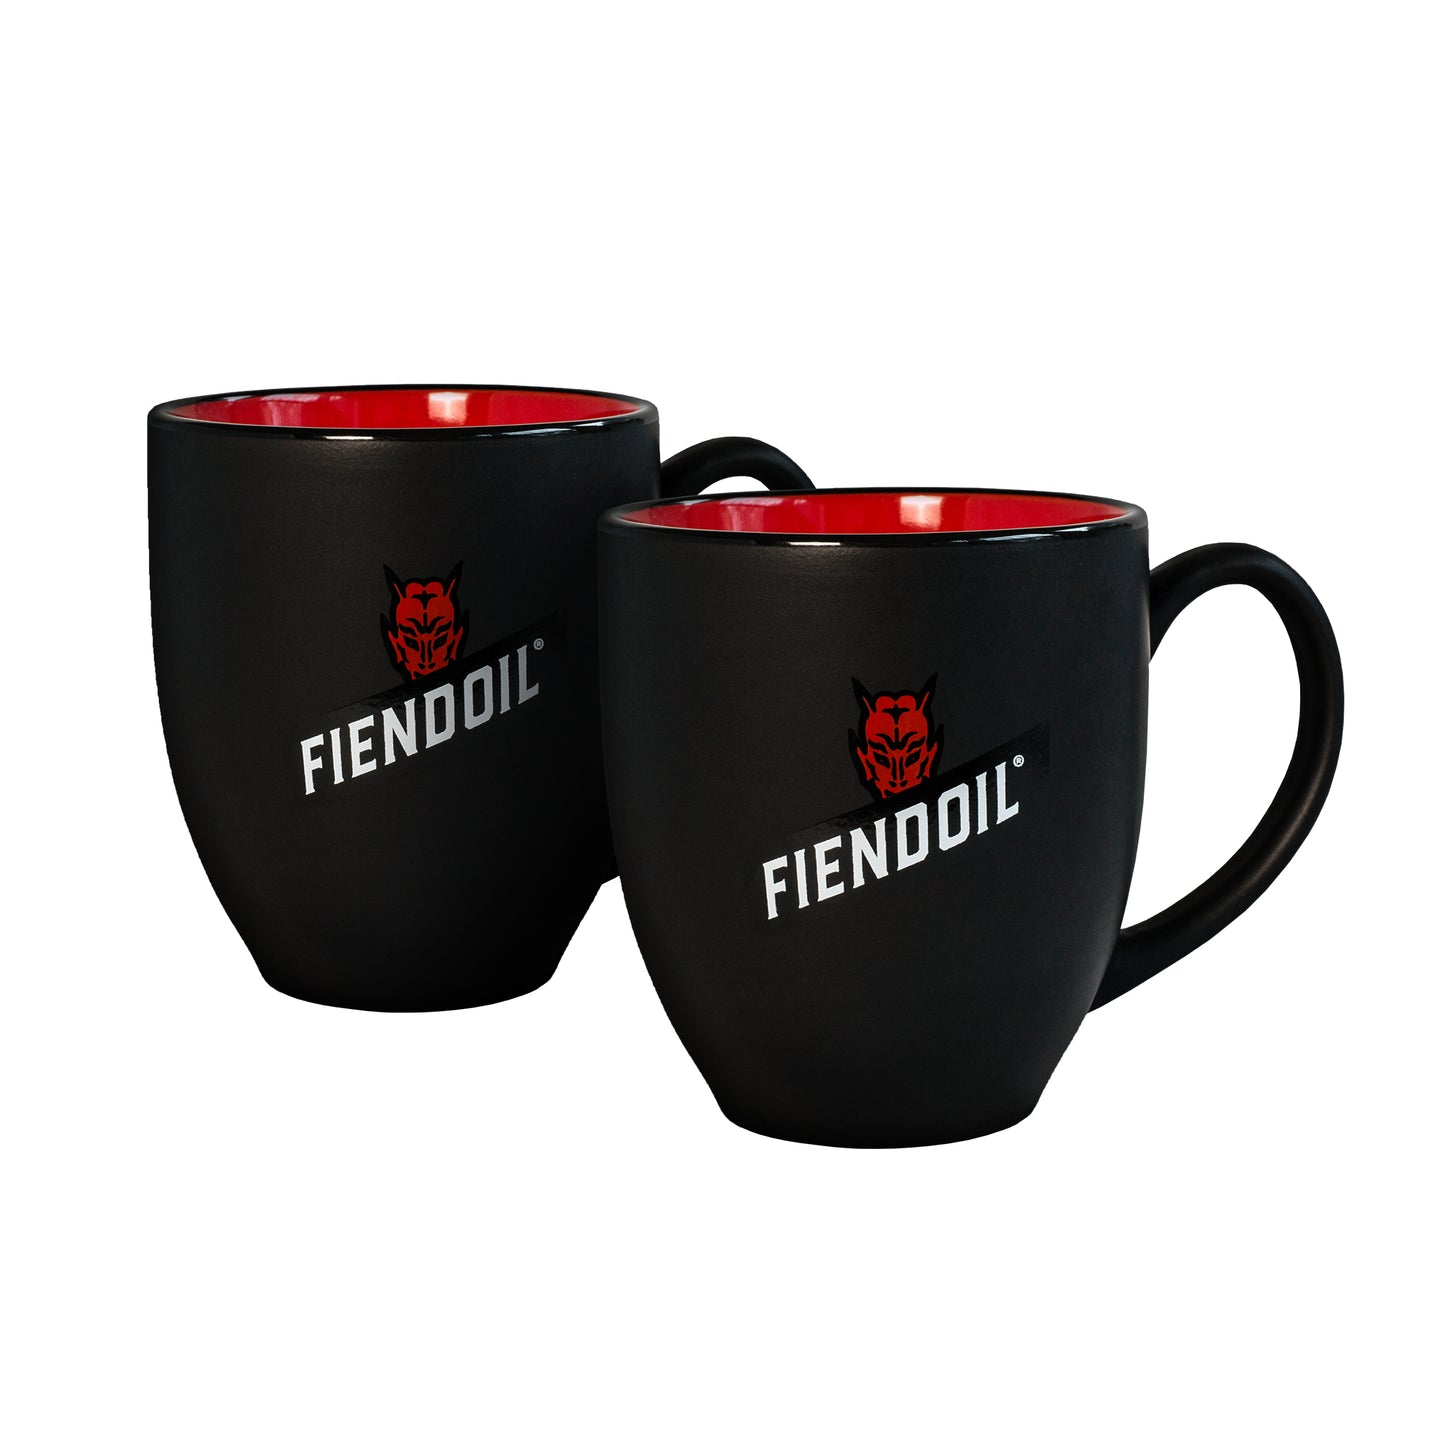 Ceramic coffee mugs - 15 Oz. Matte black/red interior.  2-Pack